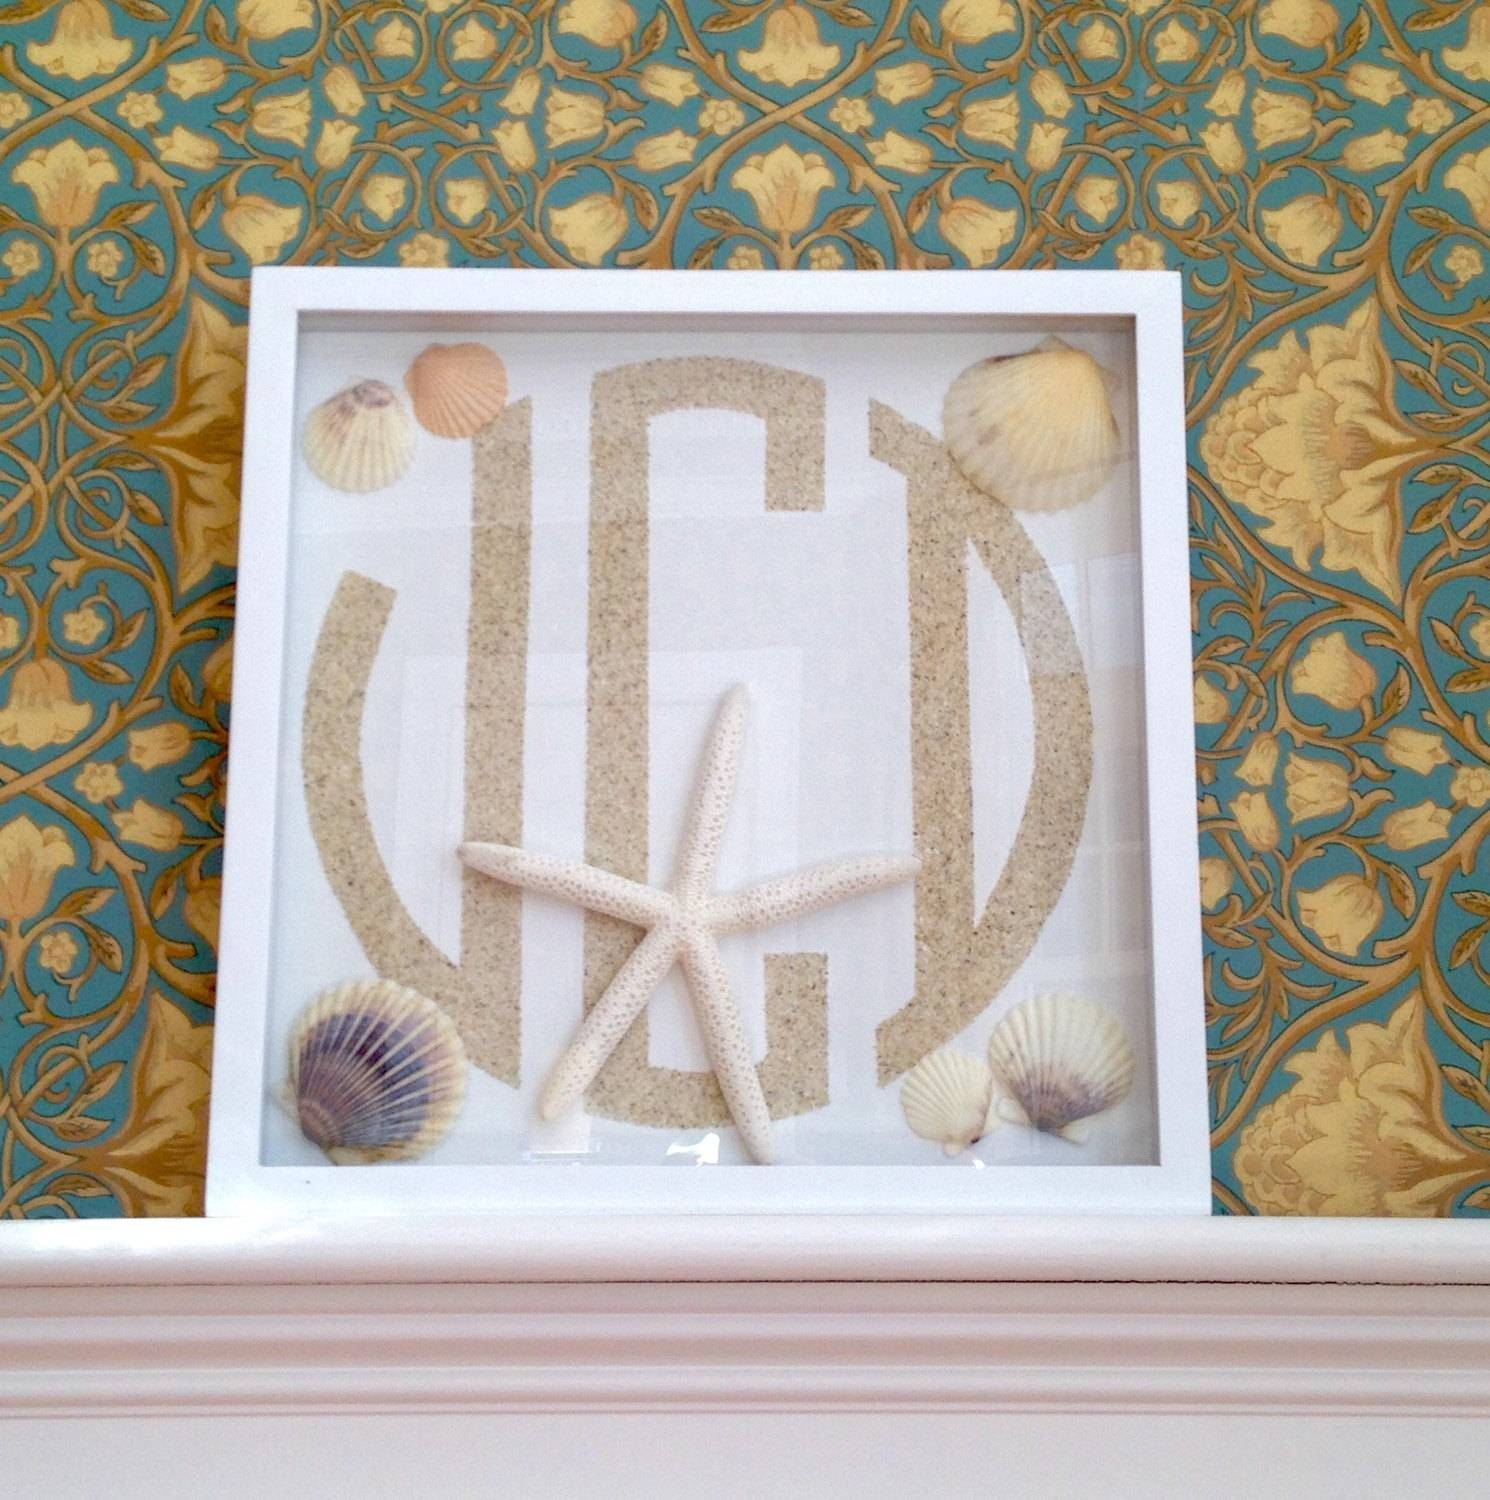 Beach Monogram, Framed Monogram, Monogram Wall Hanging, Beach With Most Popular Framed Monogram Wall Art (View 2 of 20)